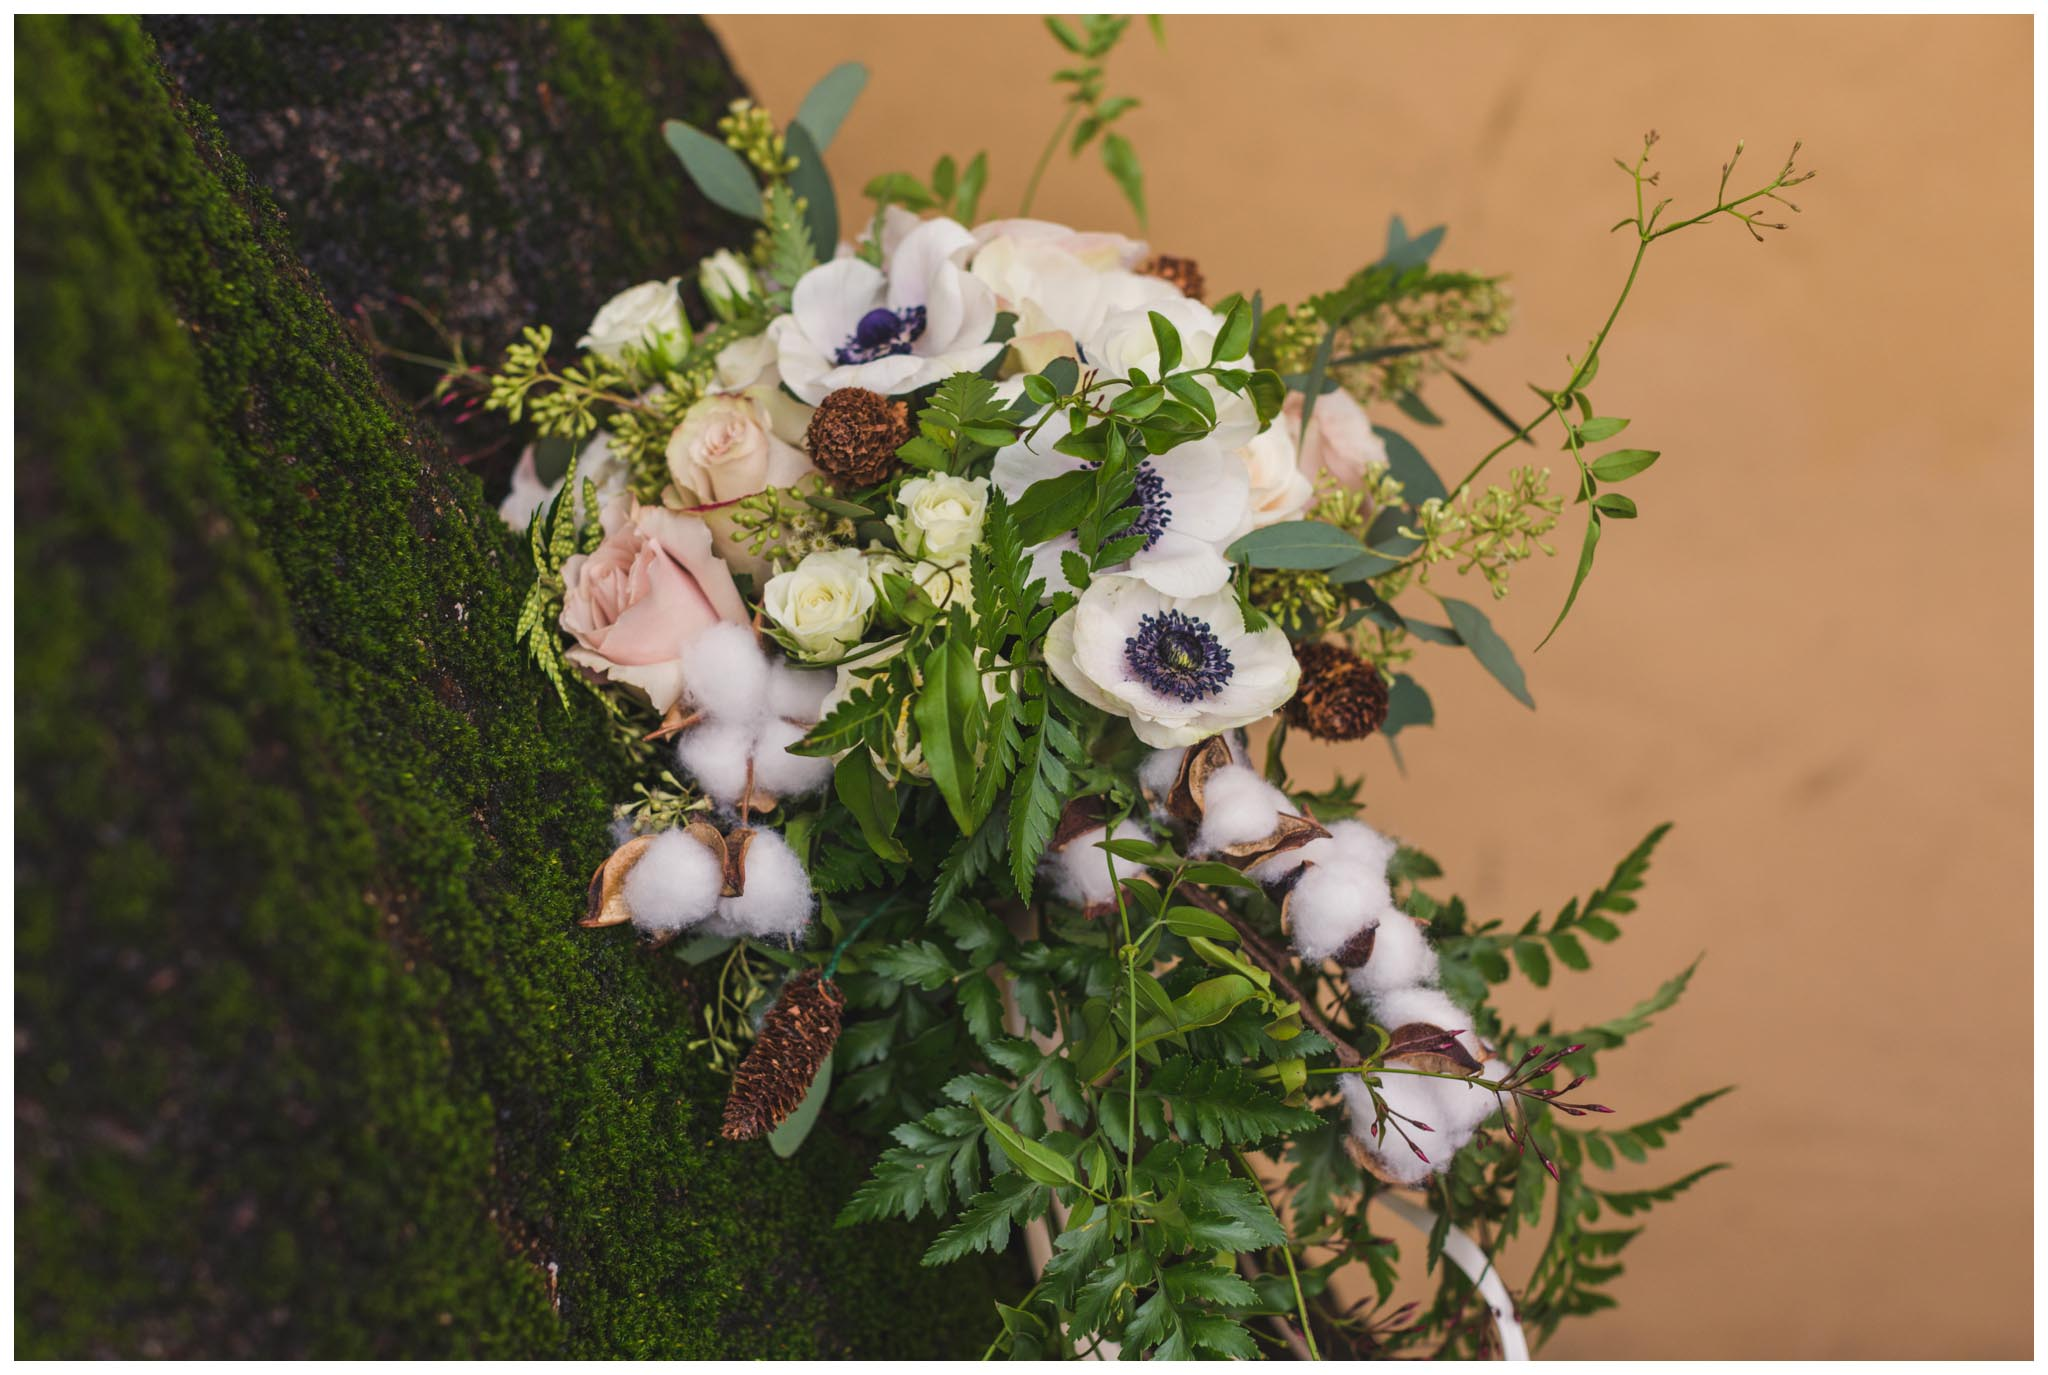 Cera Singley Events, bouquet, flowers